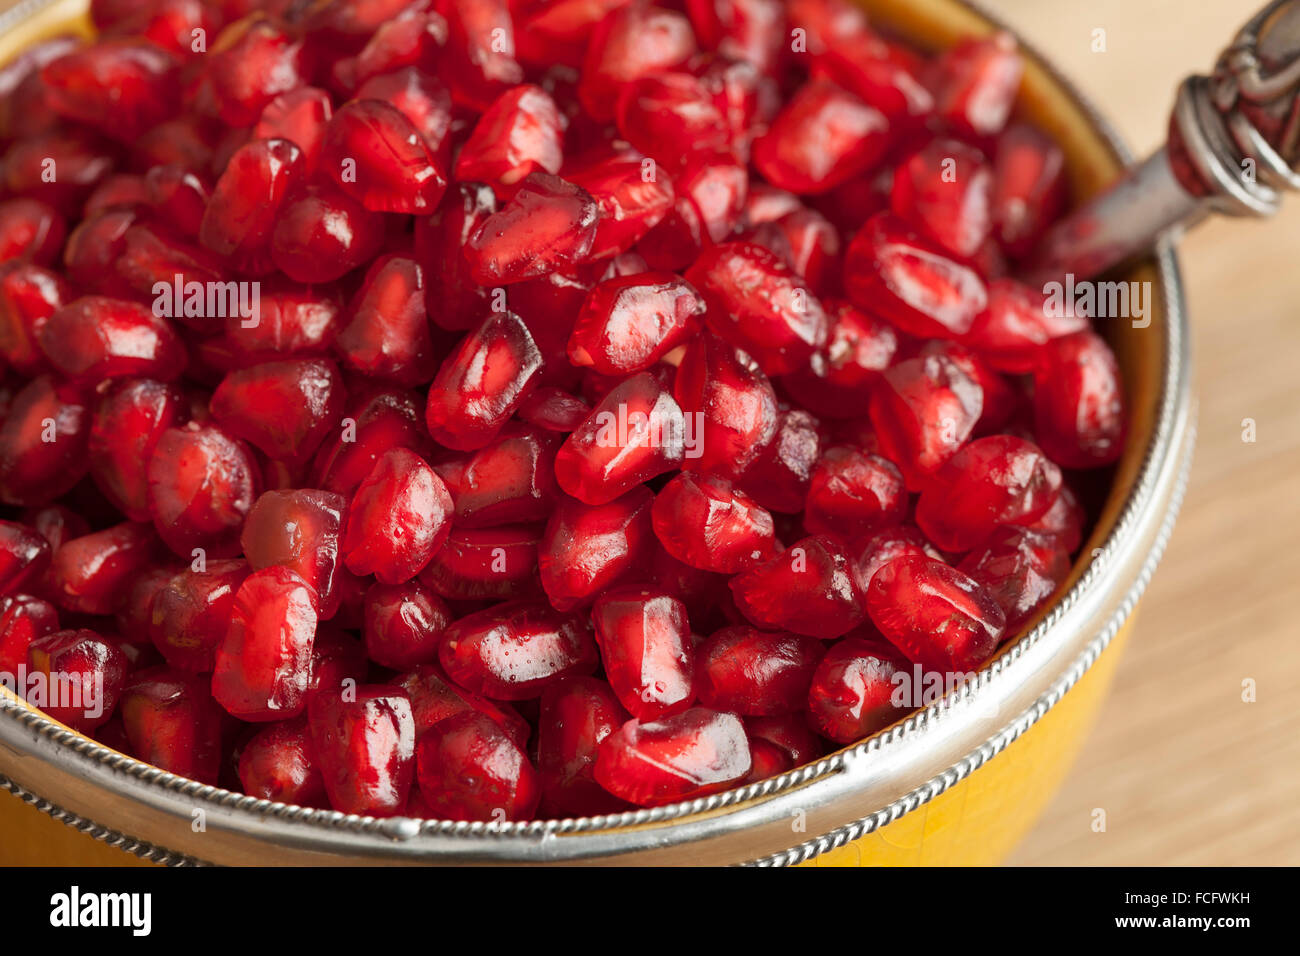 Moroccan dessert from fresh red pomegranate seeds close up - Stock Image